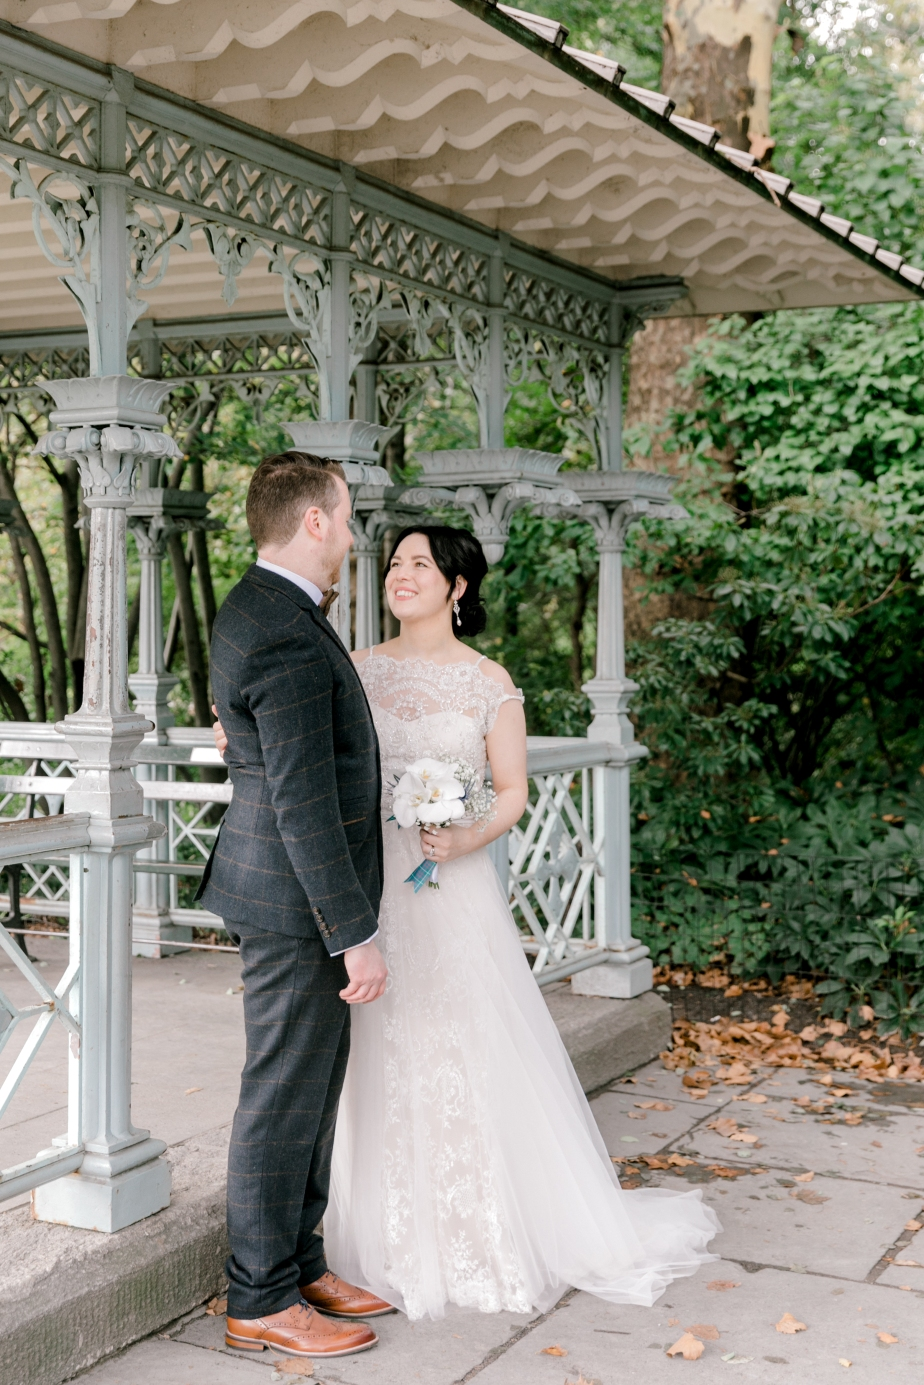 NYC-Central-Park-Wedding-LS-171 - Copy